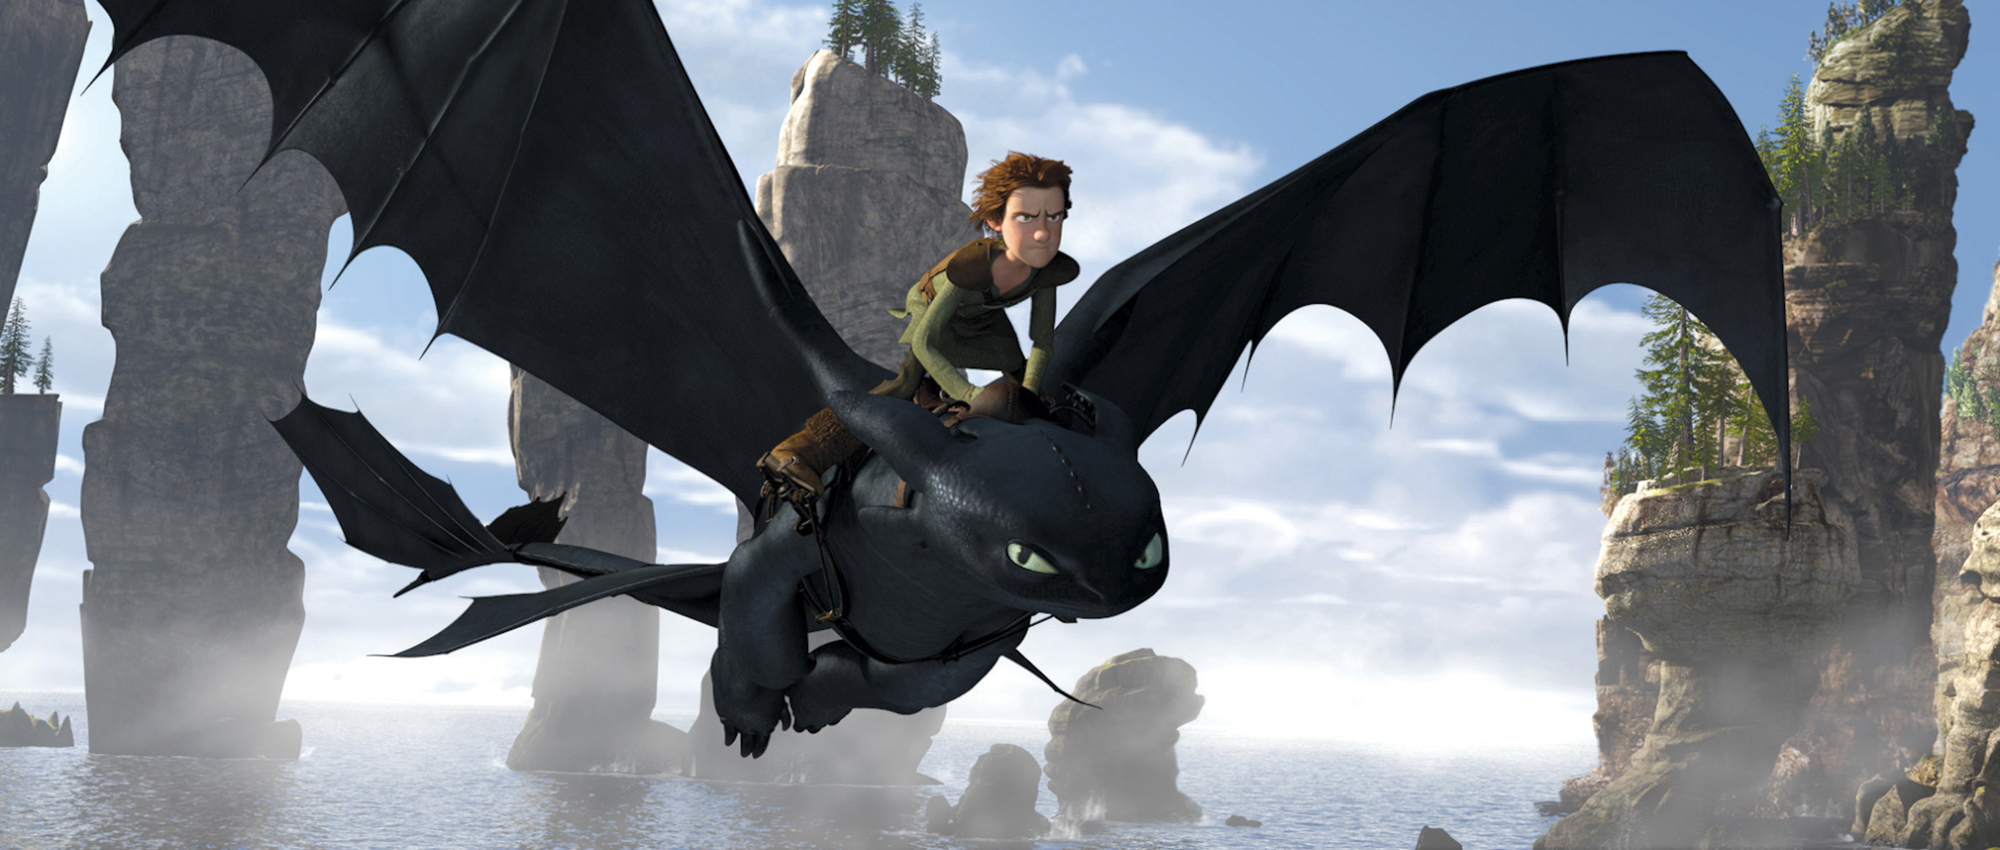 HOW TO TRAIN YOUR DRAGON Blu-ray Review | Collider - photo#18